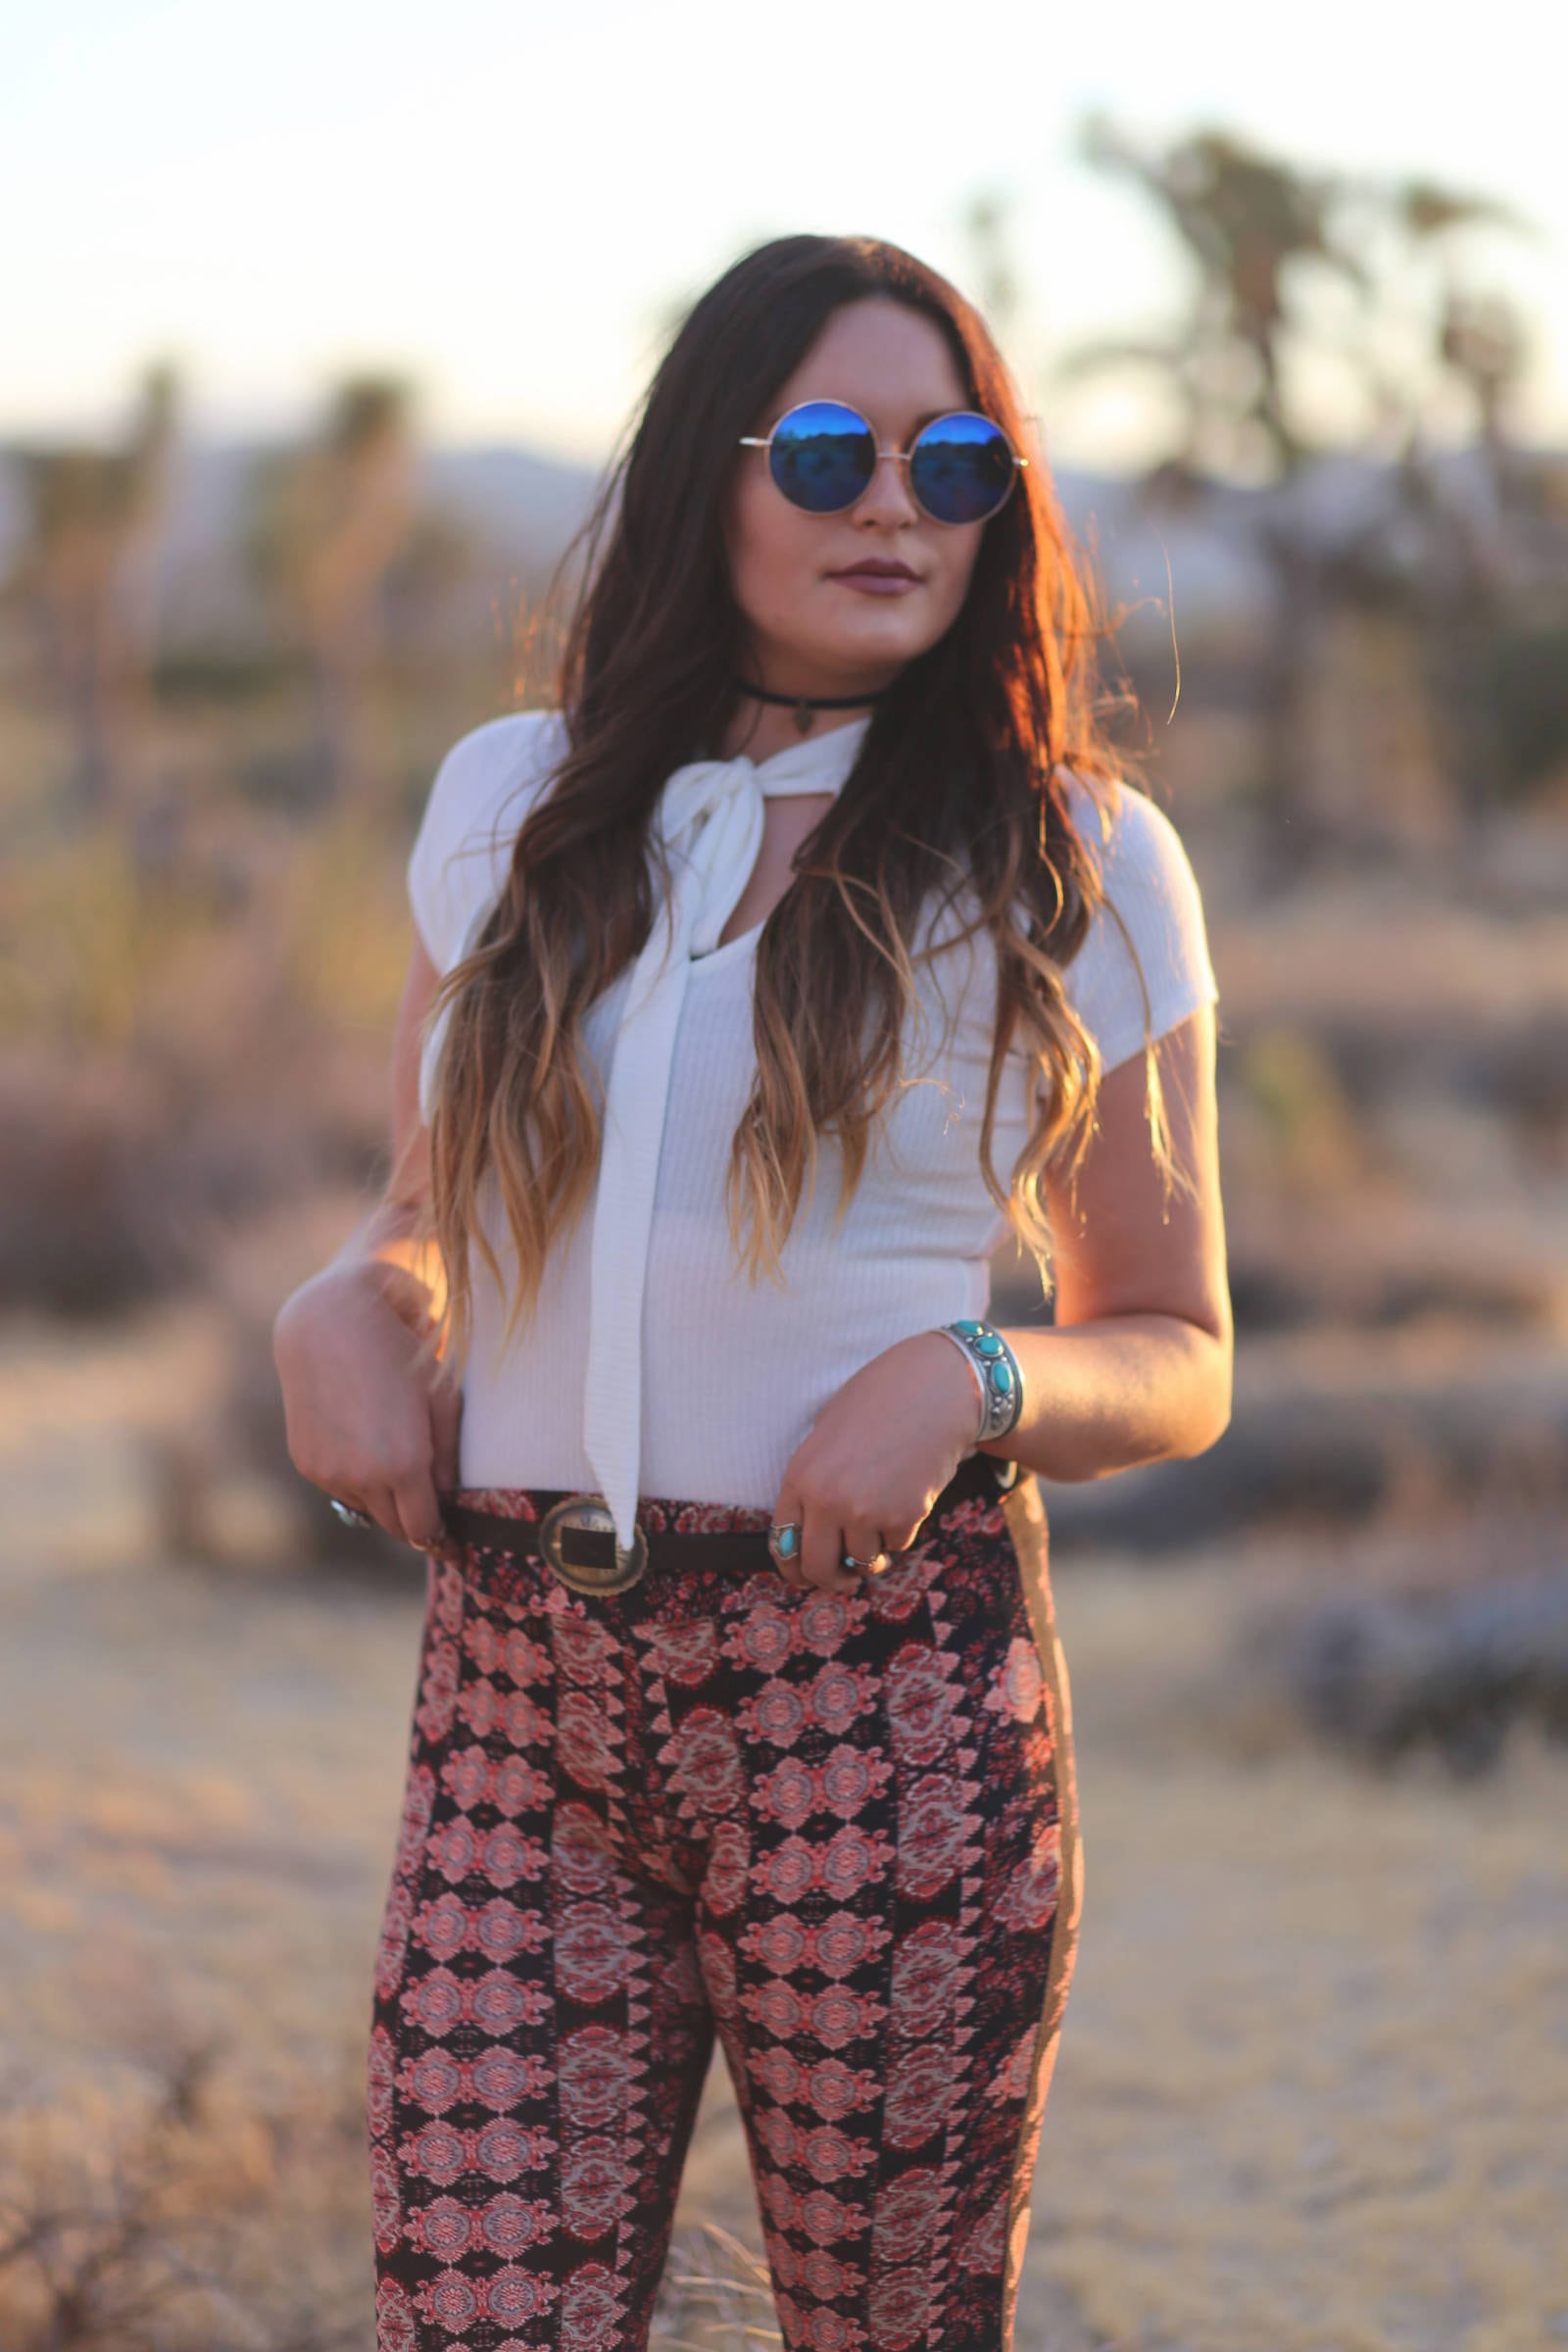 bohemian inspired outfit in joshua tree national park